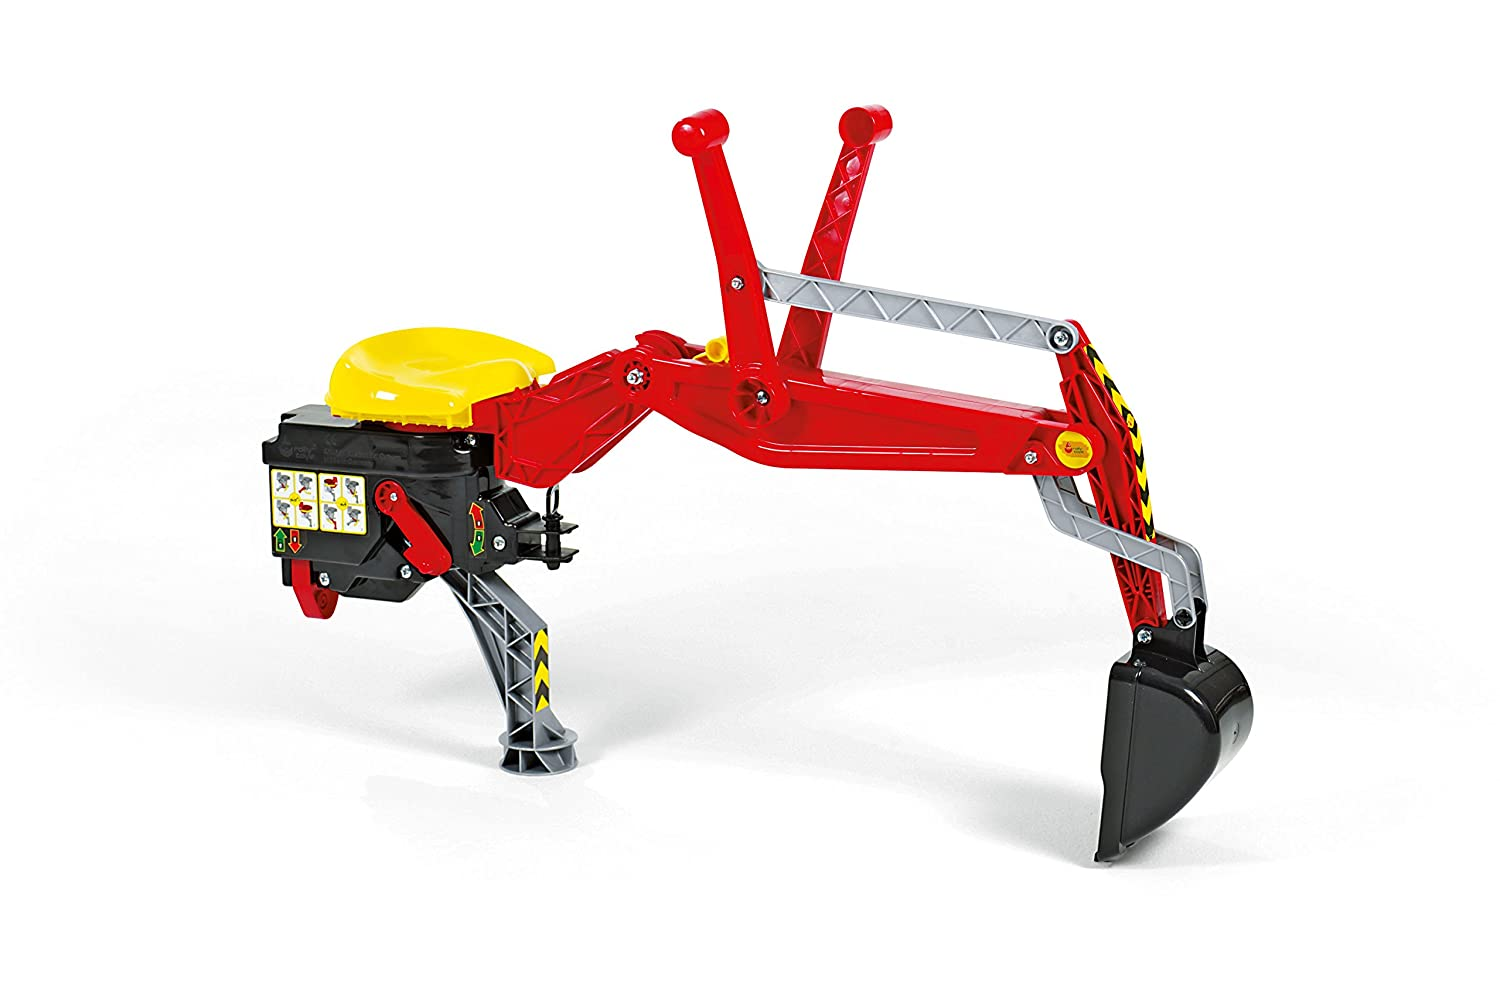 Rolly Toys Heckbagger in Rot - Rolly Toys 409327